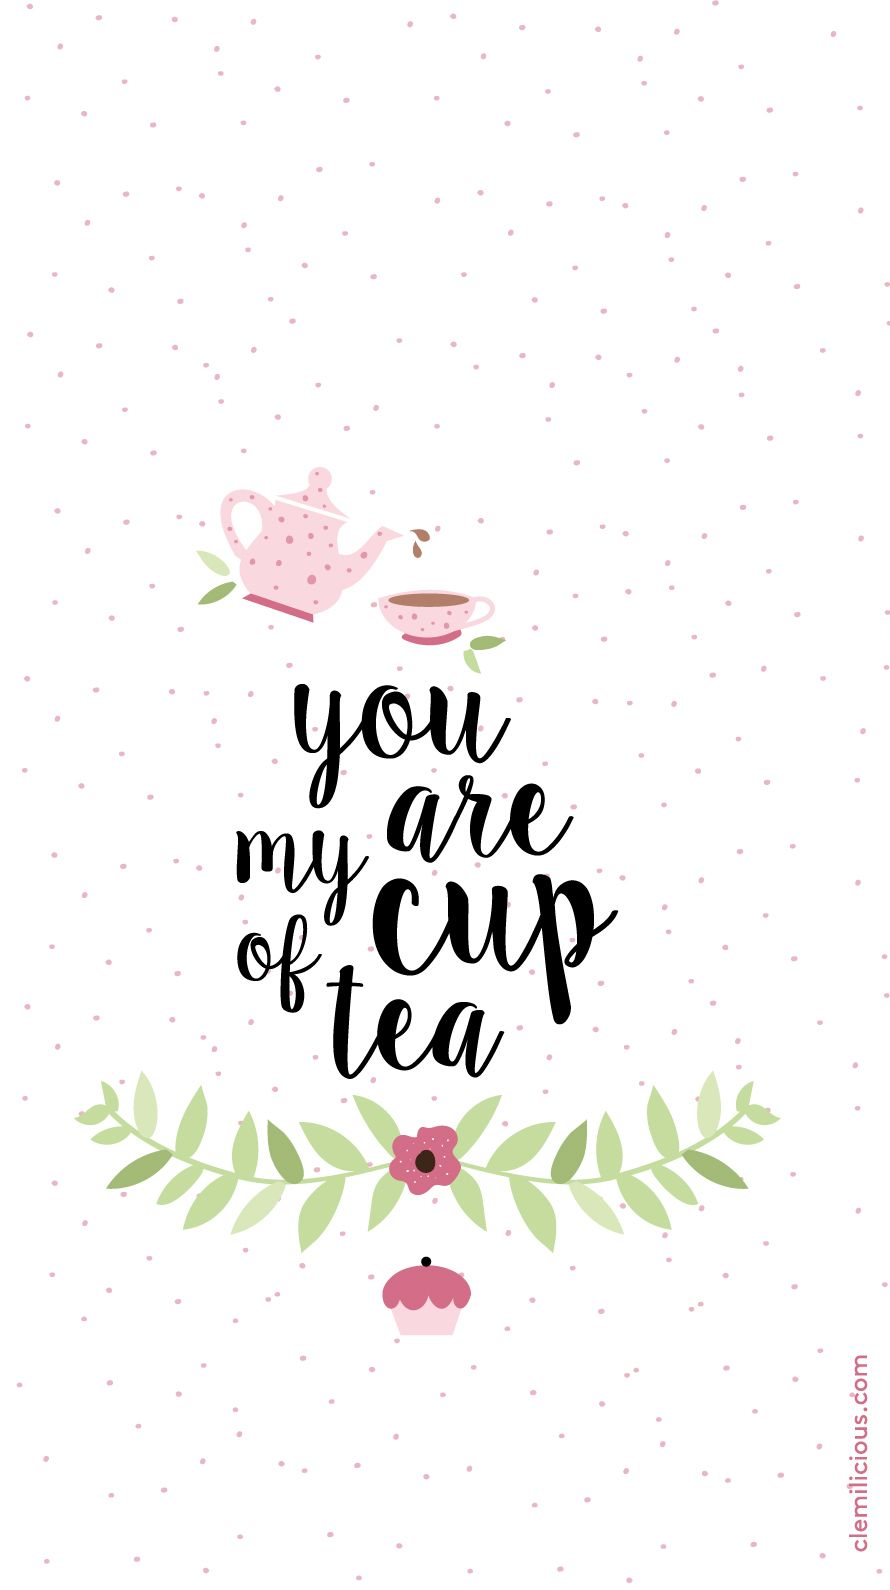 Simple Girly TeaTime IPhone Lock Screen Wallpaper PanPins